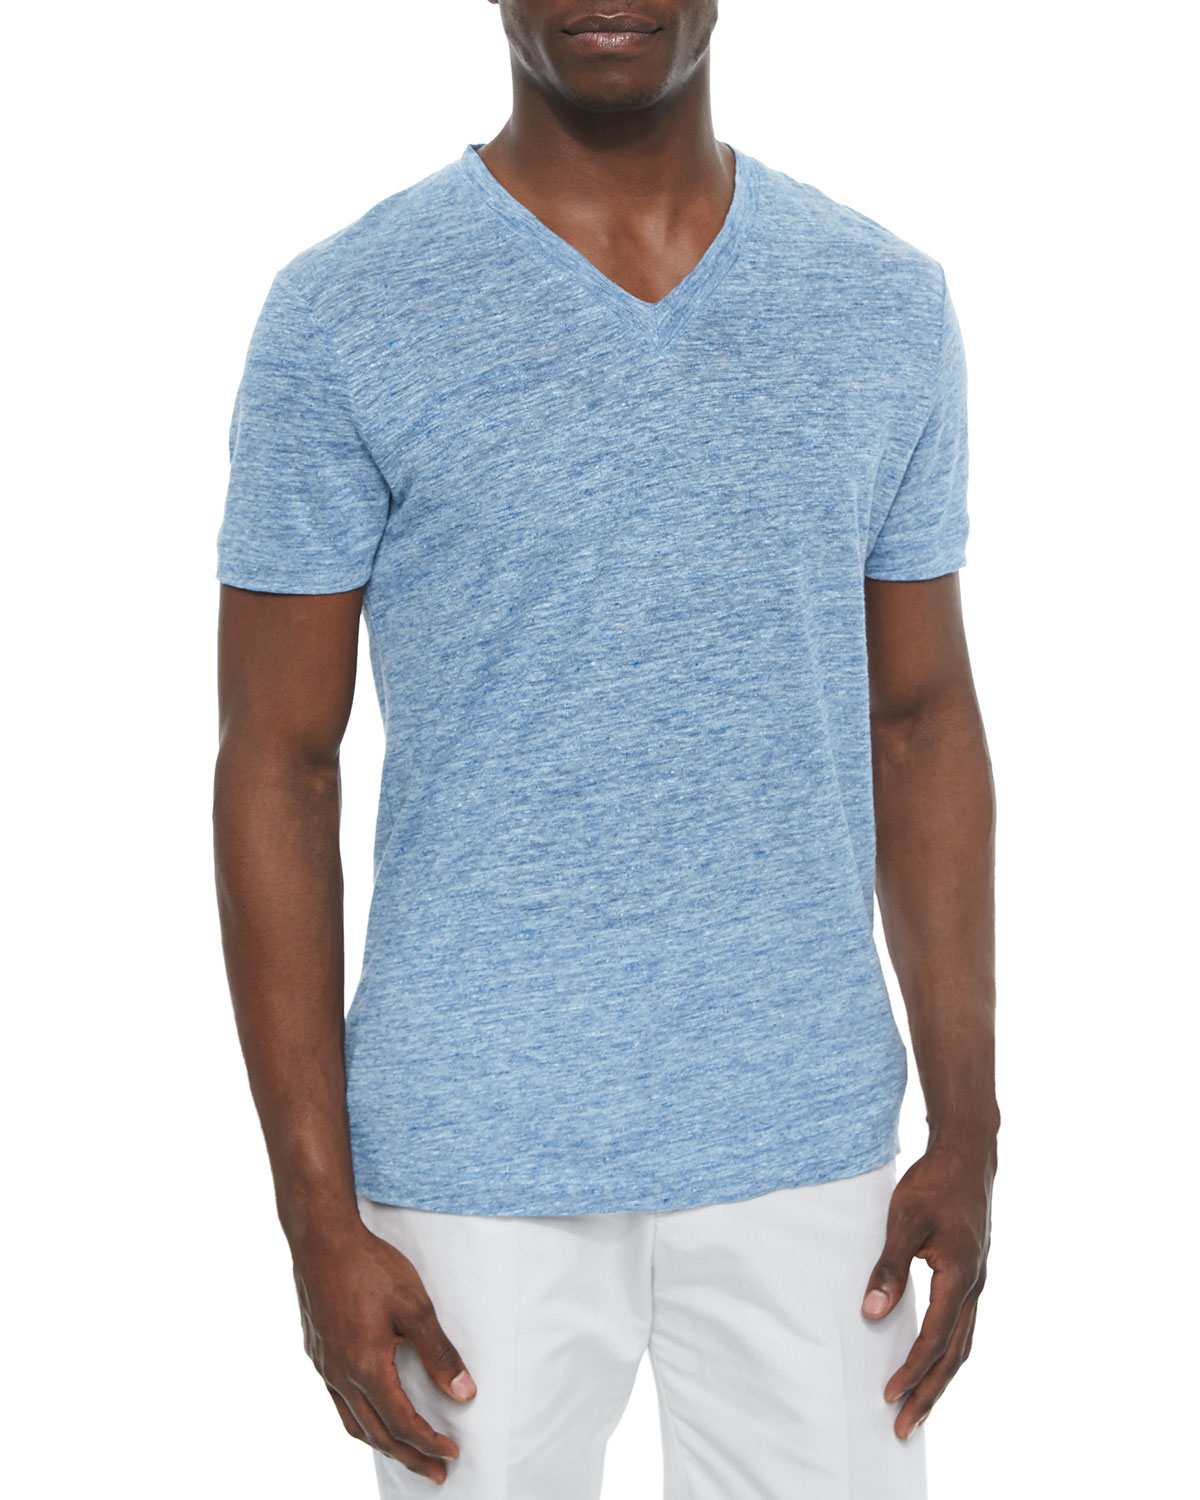 Linen V-Neck Tee, Light Blue